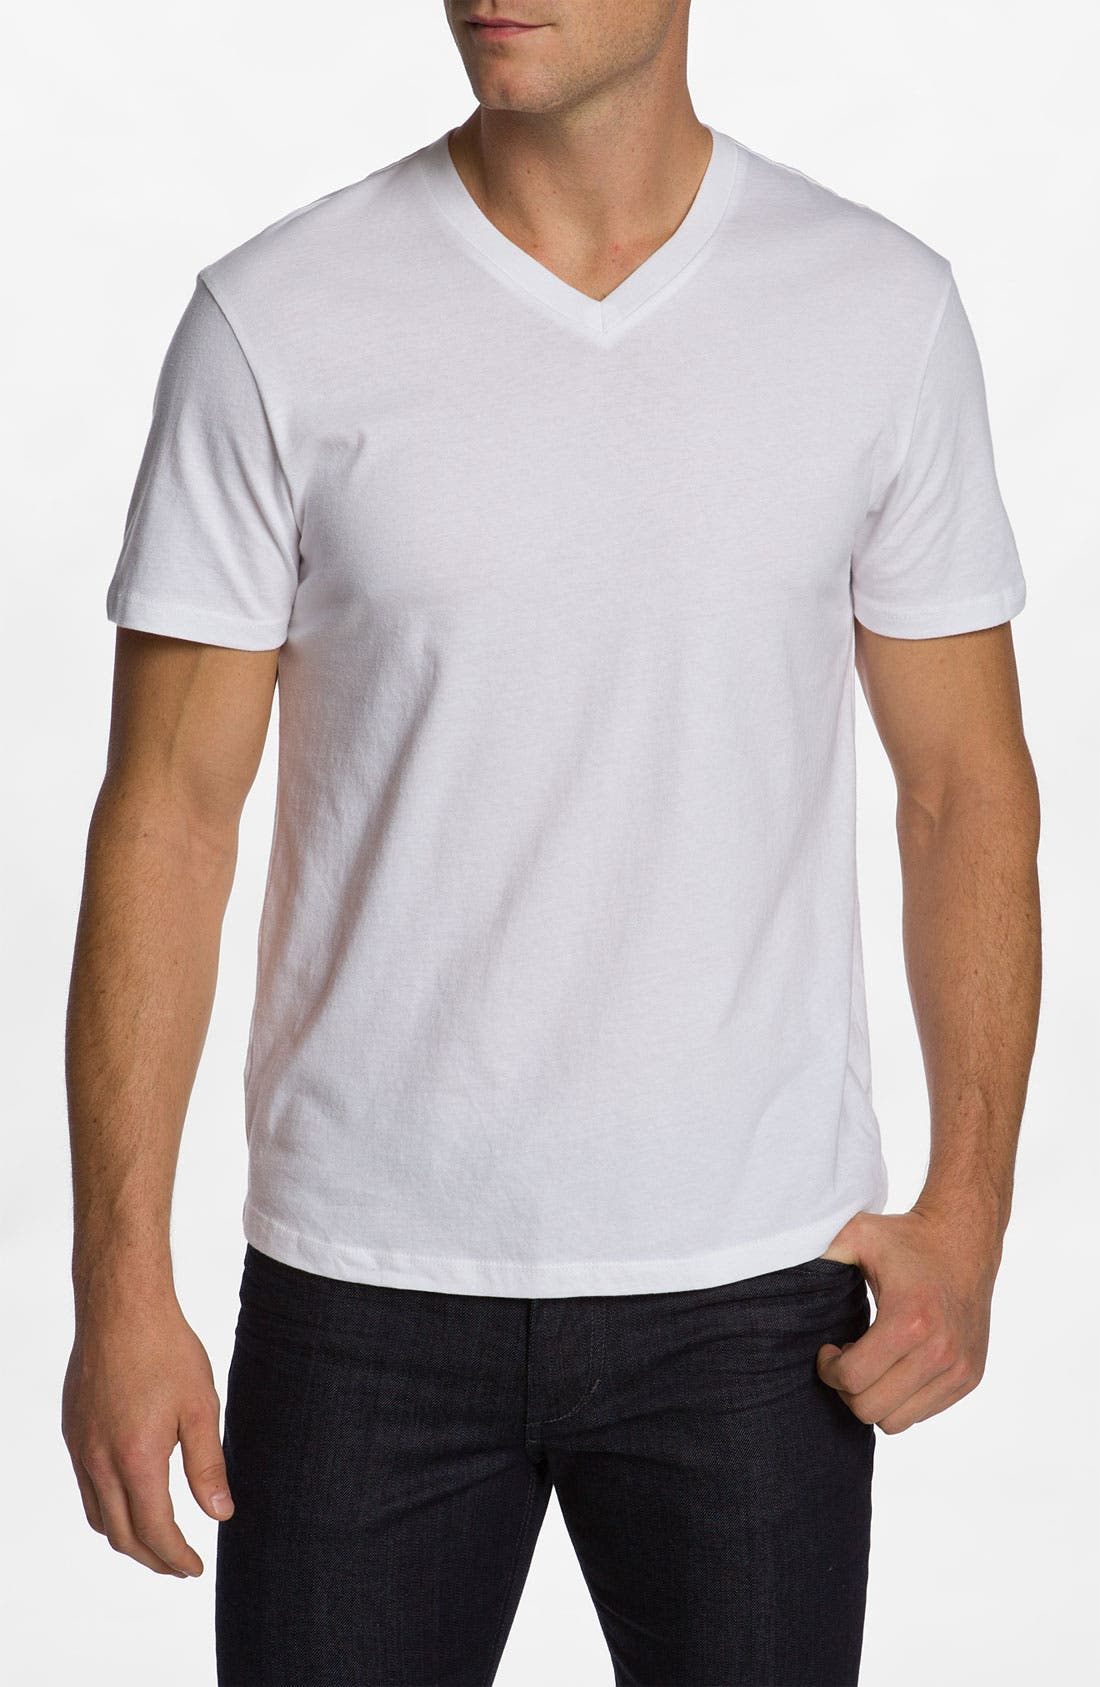 Alternate Image 1 Selected - The Rail Slim Fit V-Neck T-Shirt (2 for $30)